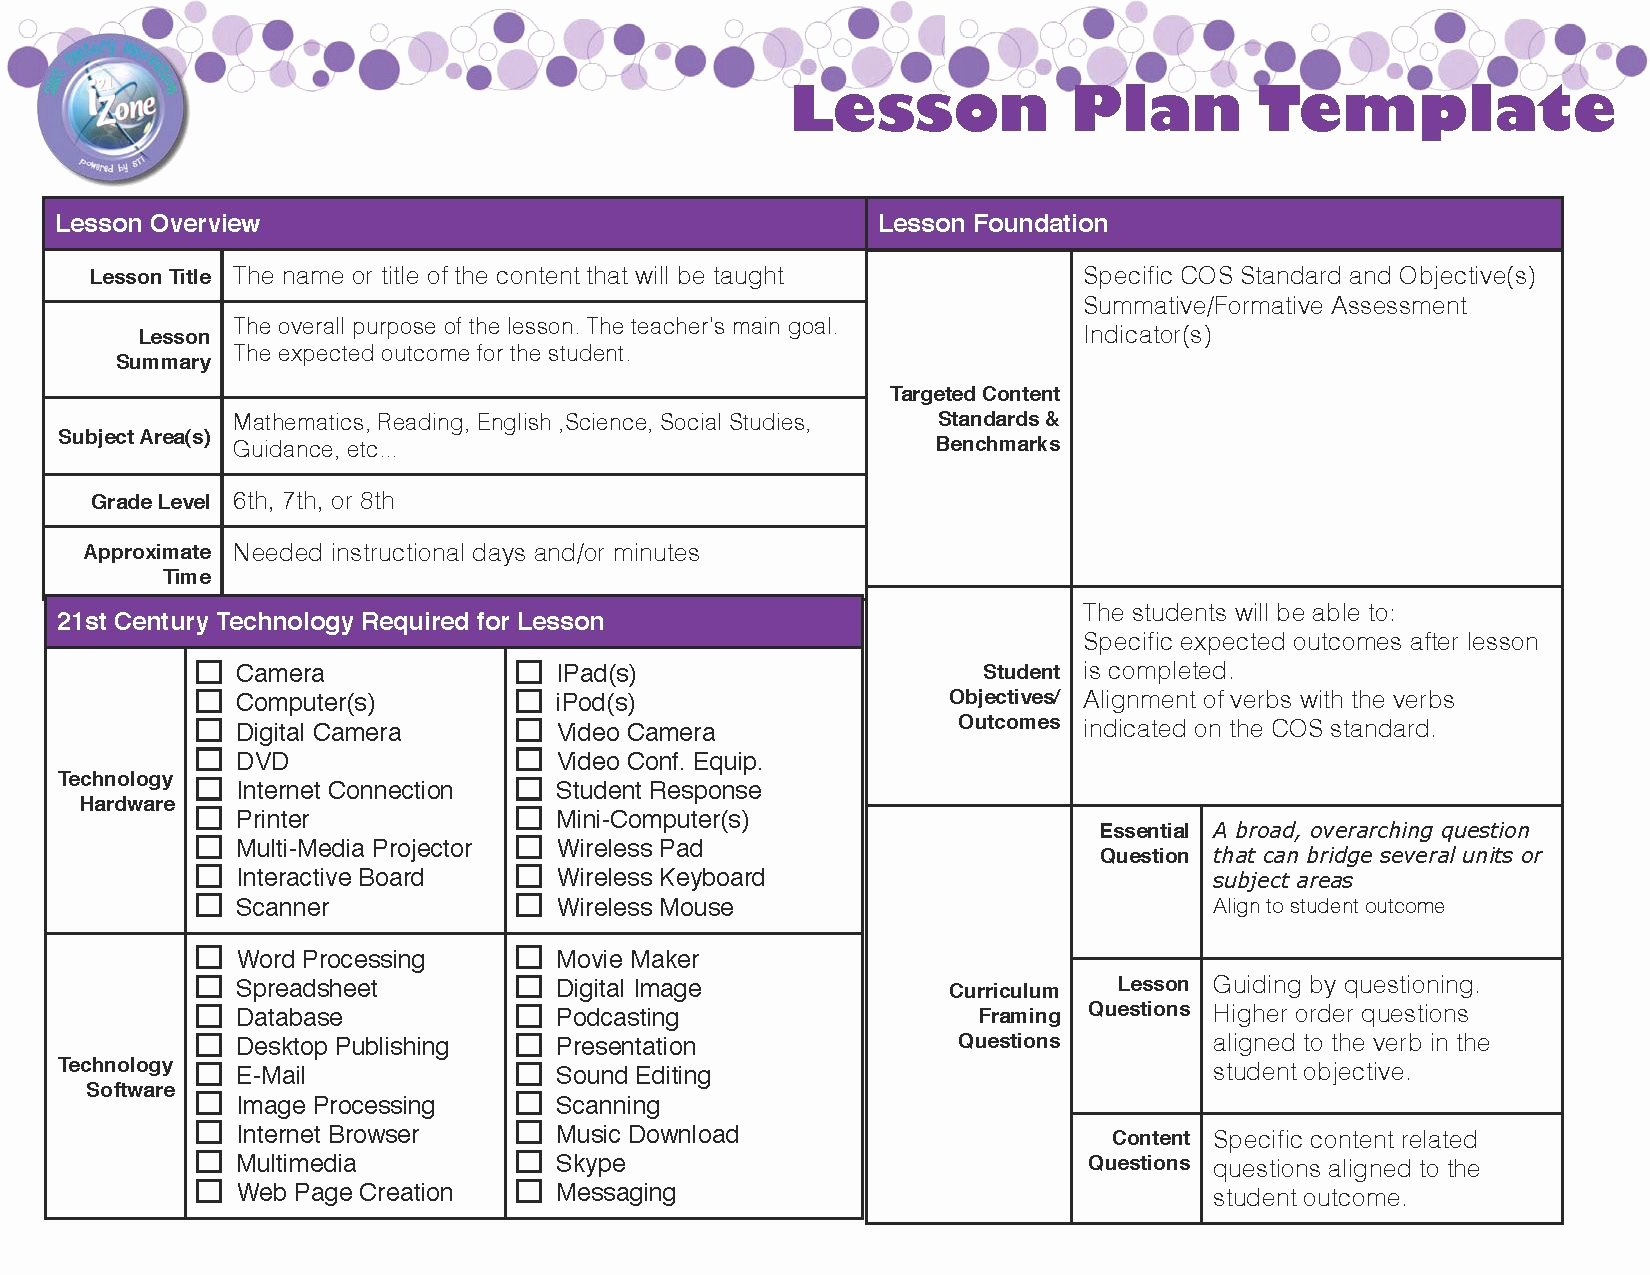 Lesson Plan Outline Template Beautiful Lesson Plan Template